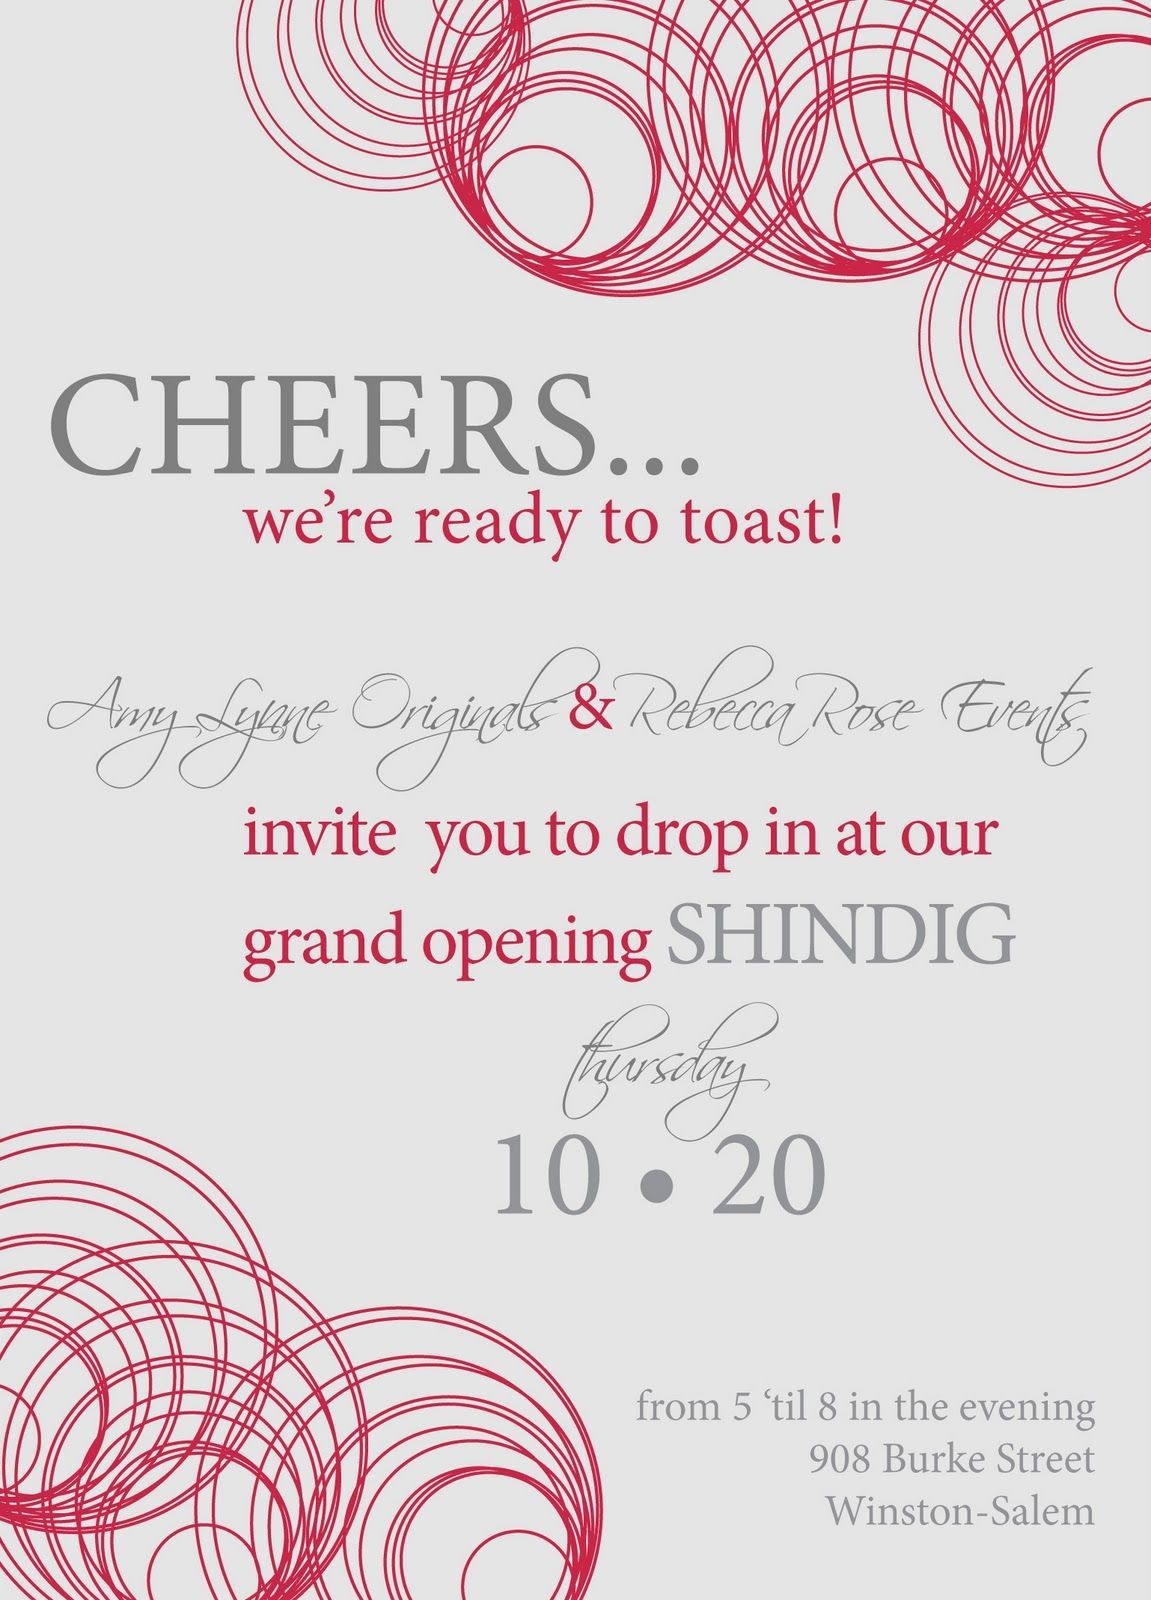 002 Imposing Open House Invitation Template Sample  Templates Free Printable BusinesFull